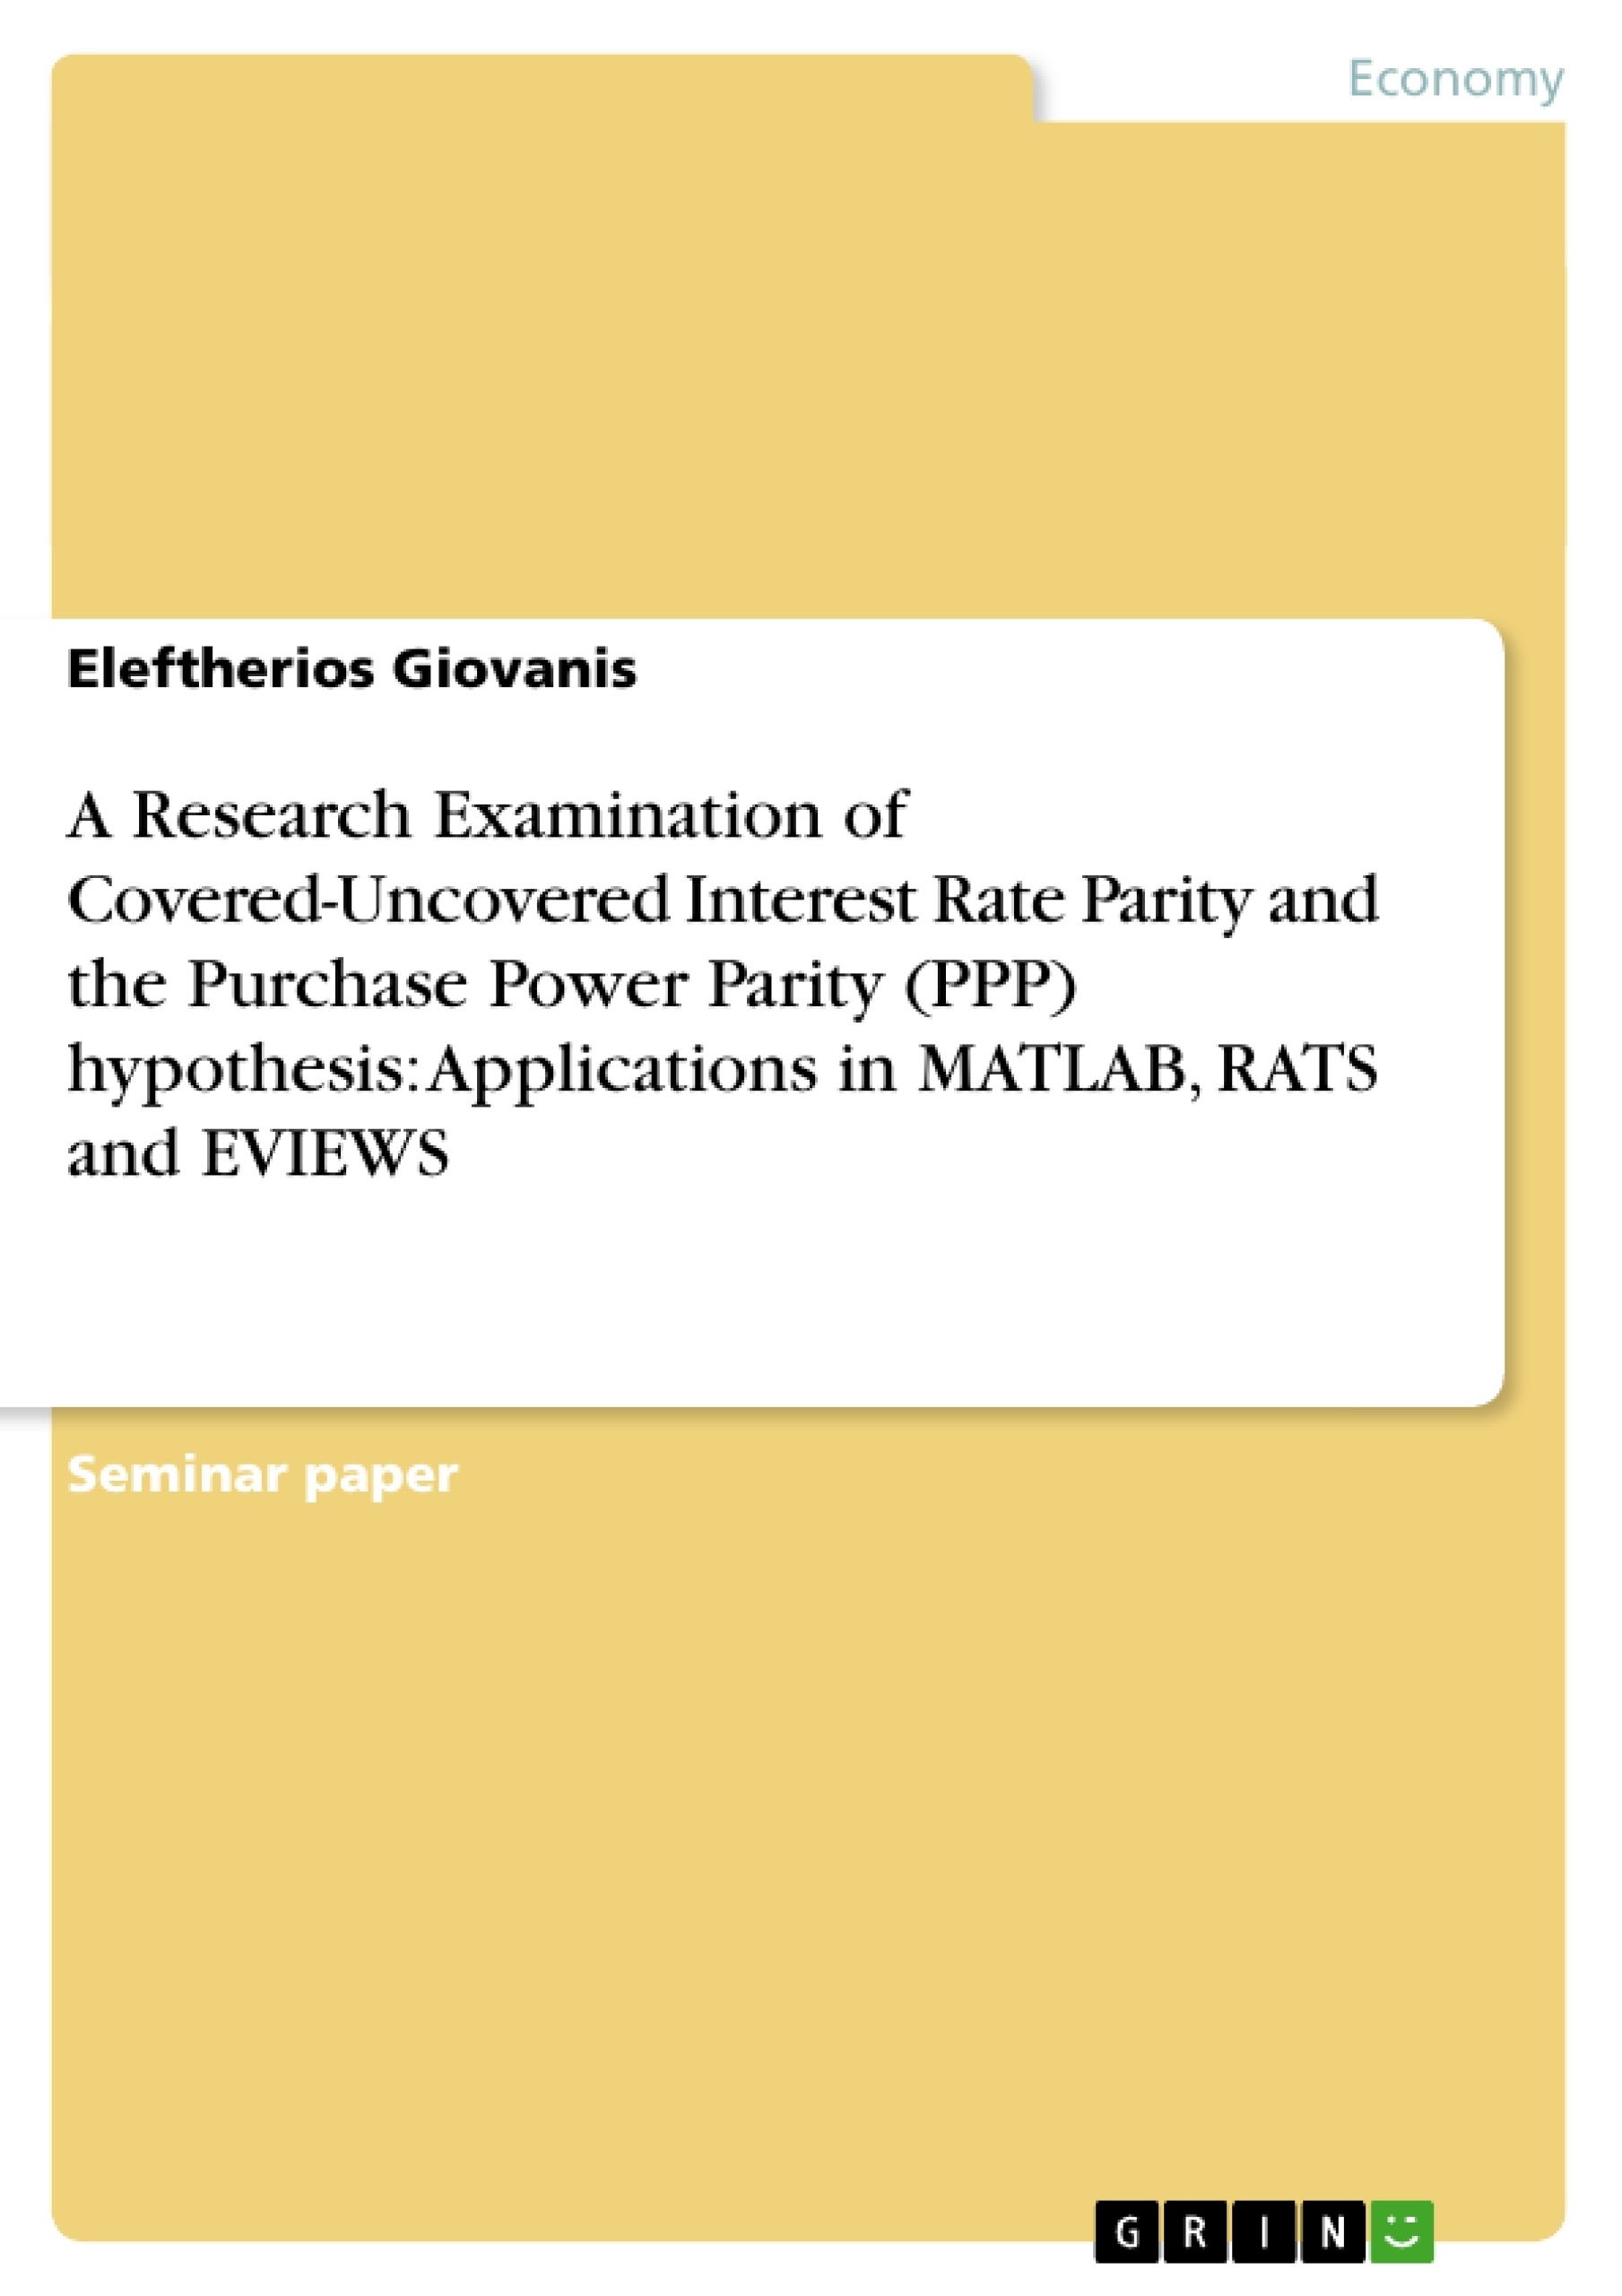 Title: A Research Examination of Covered-Uncovered Interest Rate Parity and the Purchase Power Parity (PPP) hypothesis:  Applications in MATLAB, RATS and EVIEWS